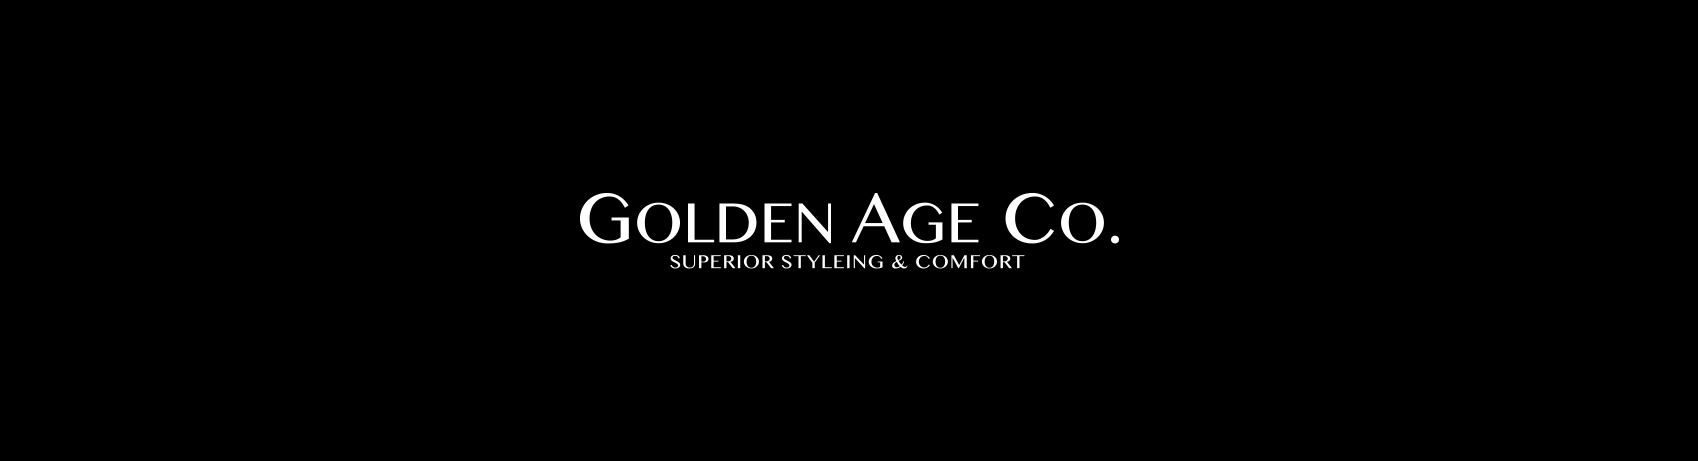 GOLDEN AGE CO.